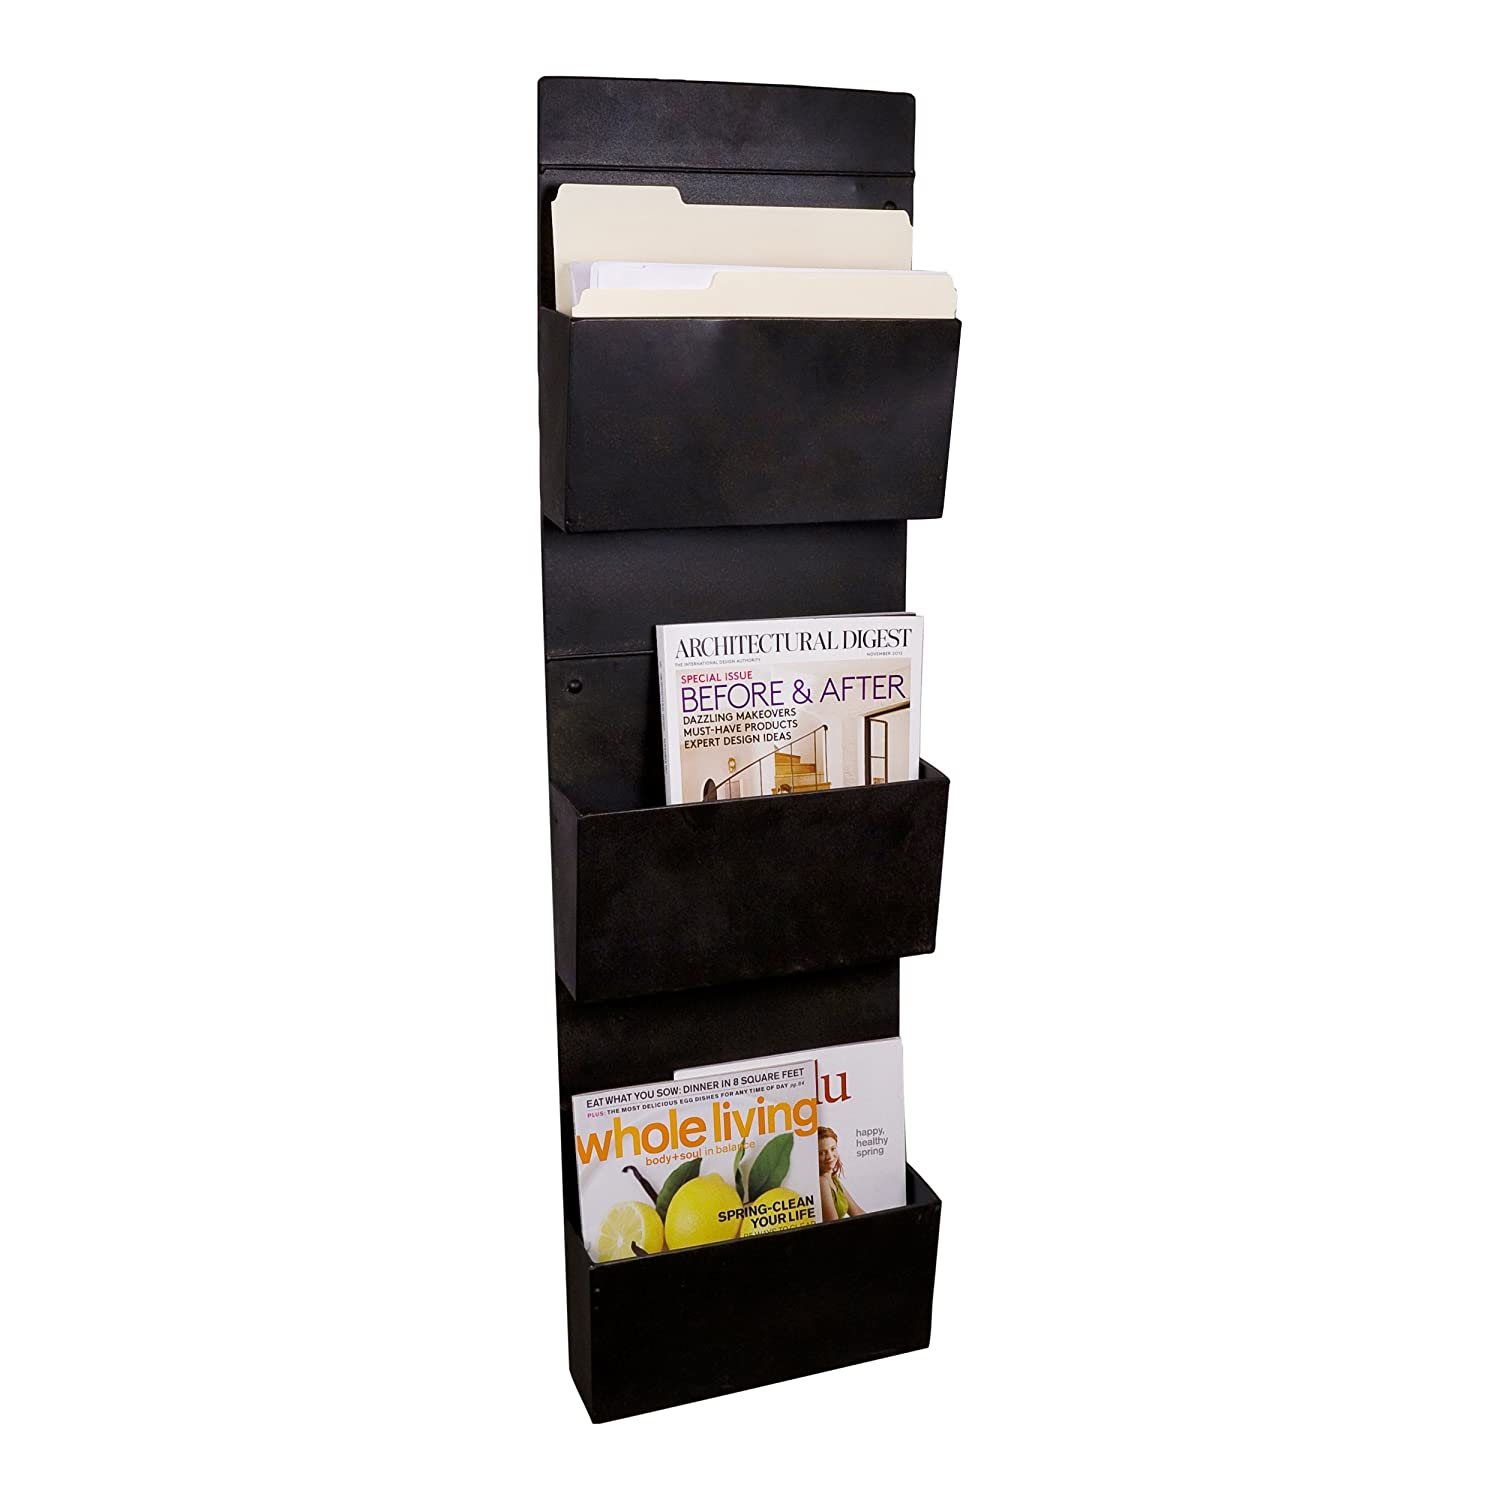 magazine gus pdp allmodern reviews piece wall mount furniture rack mounted modern